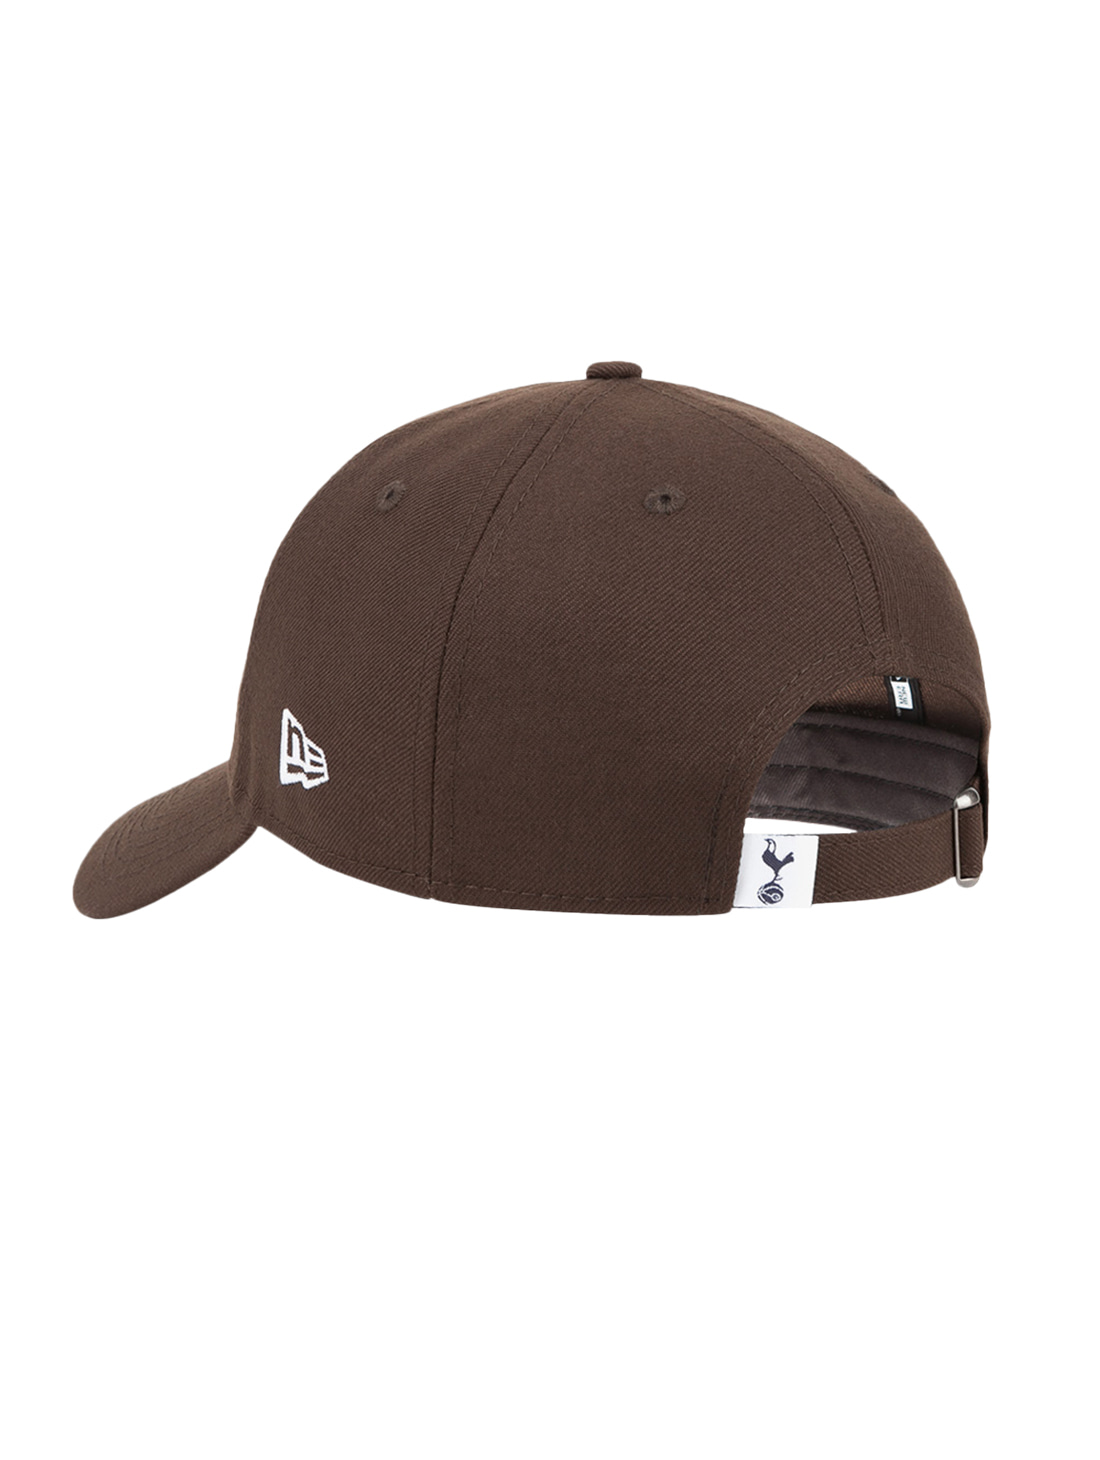 GOALSTUDIO TOTTENHAM 940 BALL CAP - WALNUT